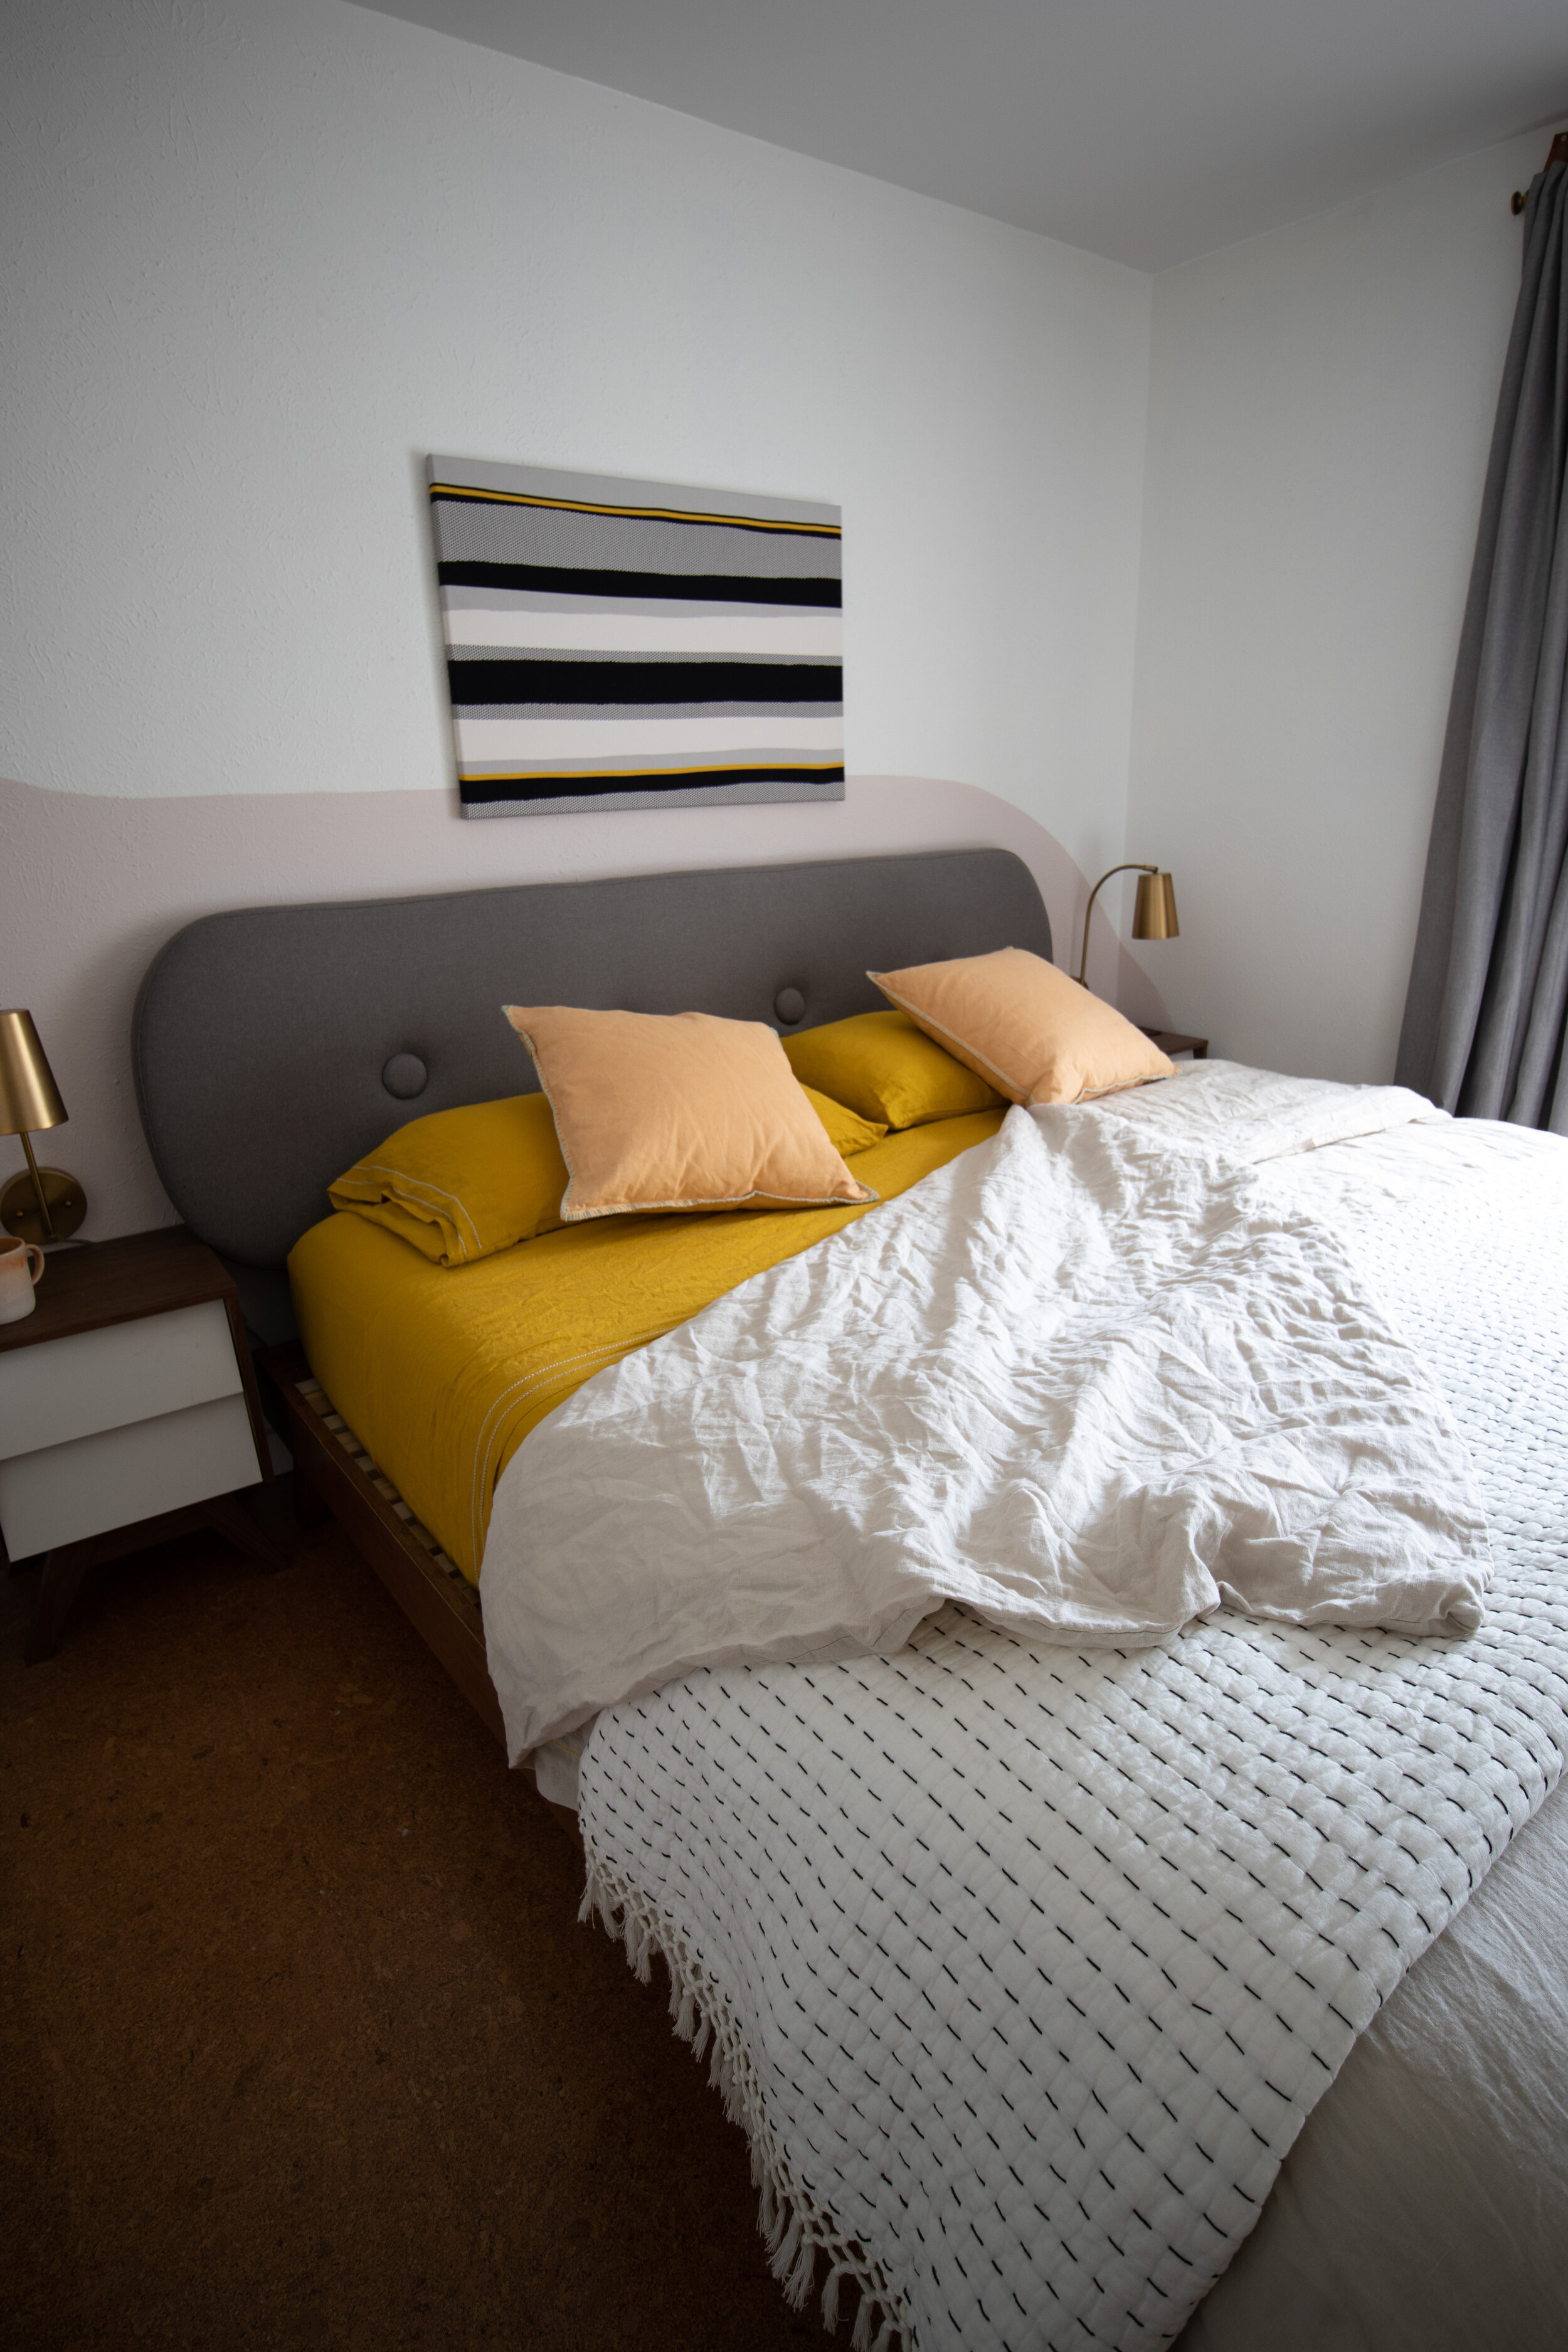 Makeover bedroom wall mural yellow sheets.JPG